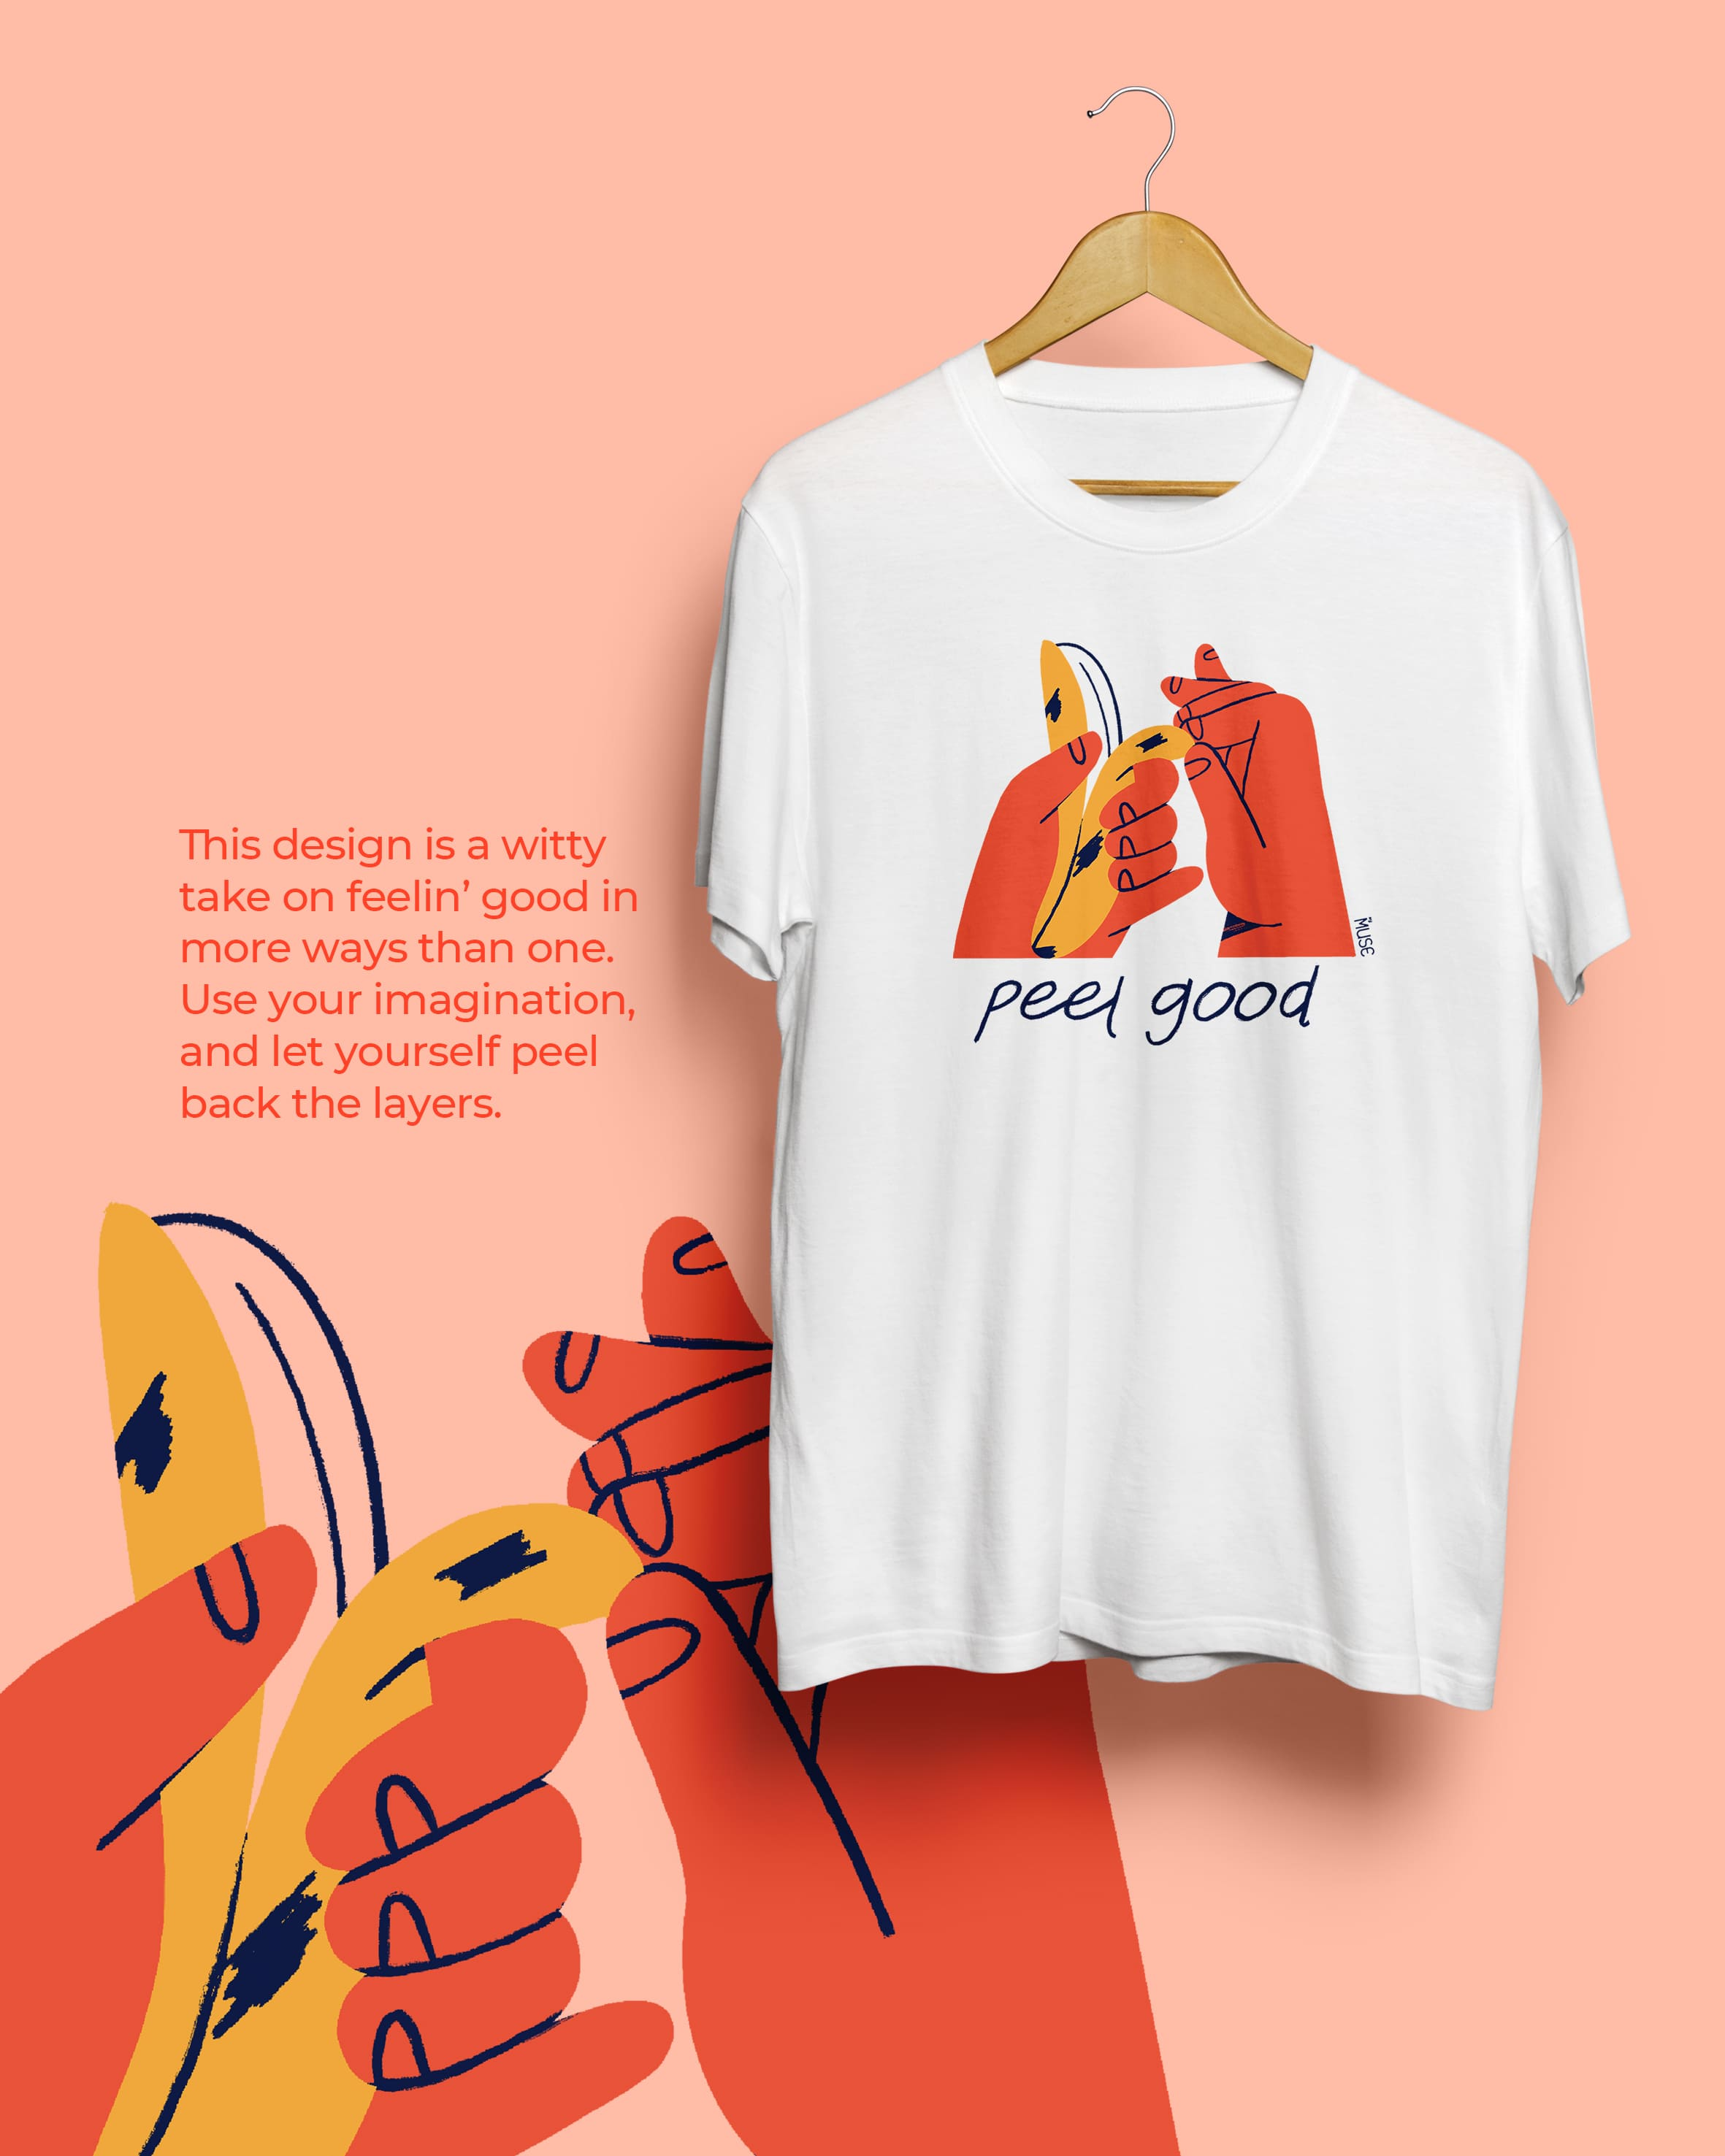 The Peel Good t-shirt design by MyMuse x Fighting Fame in the background with an illustration of the design in the foreground